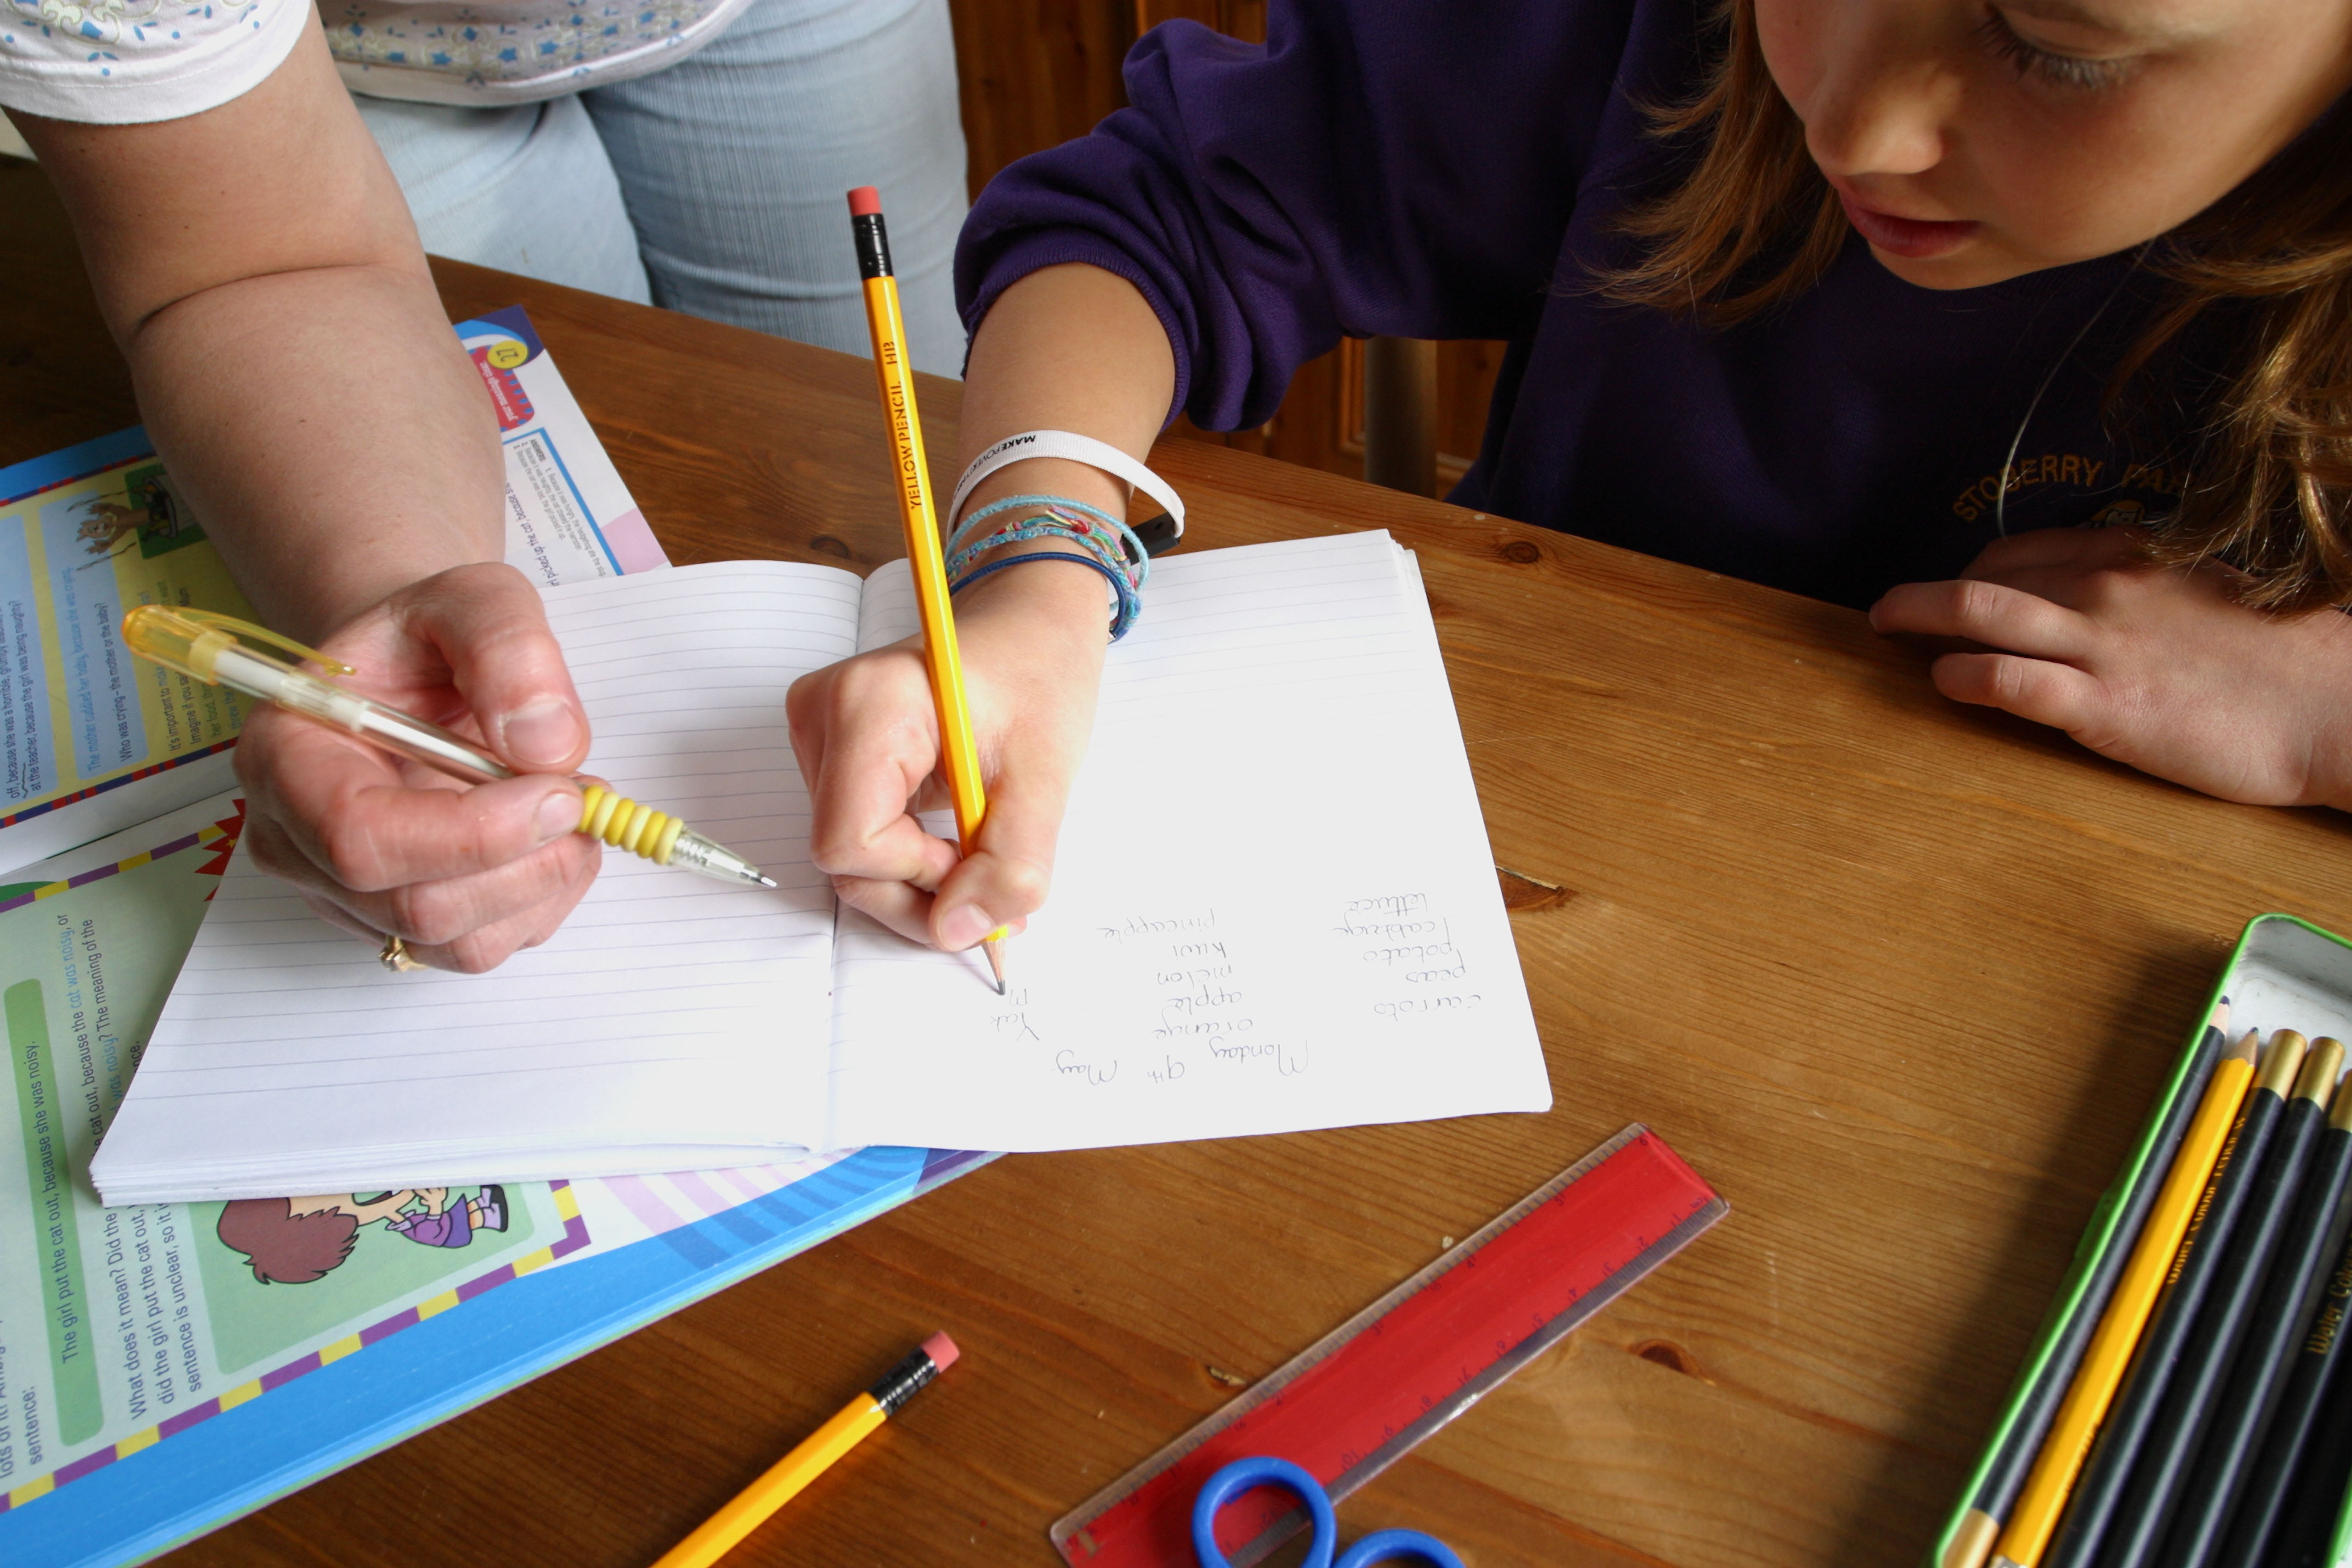 Why pupils, not teachers, mark some of their classmates